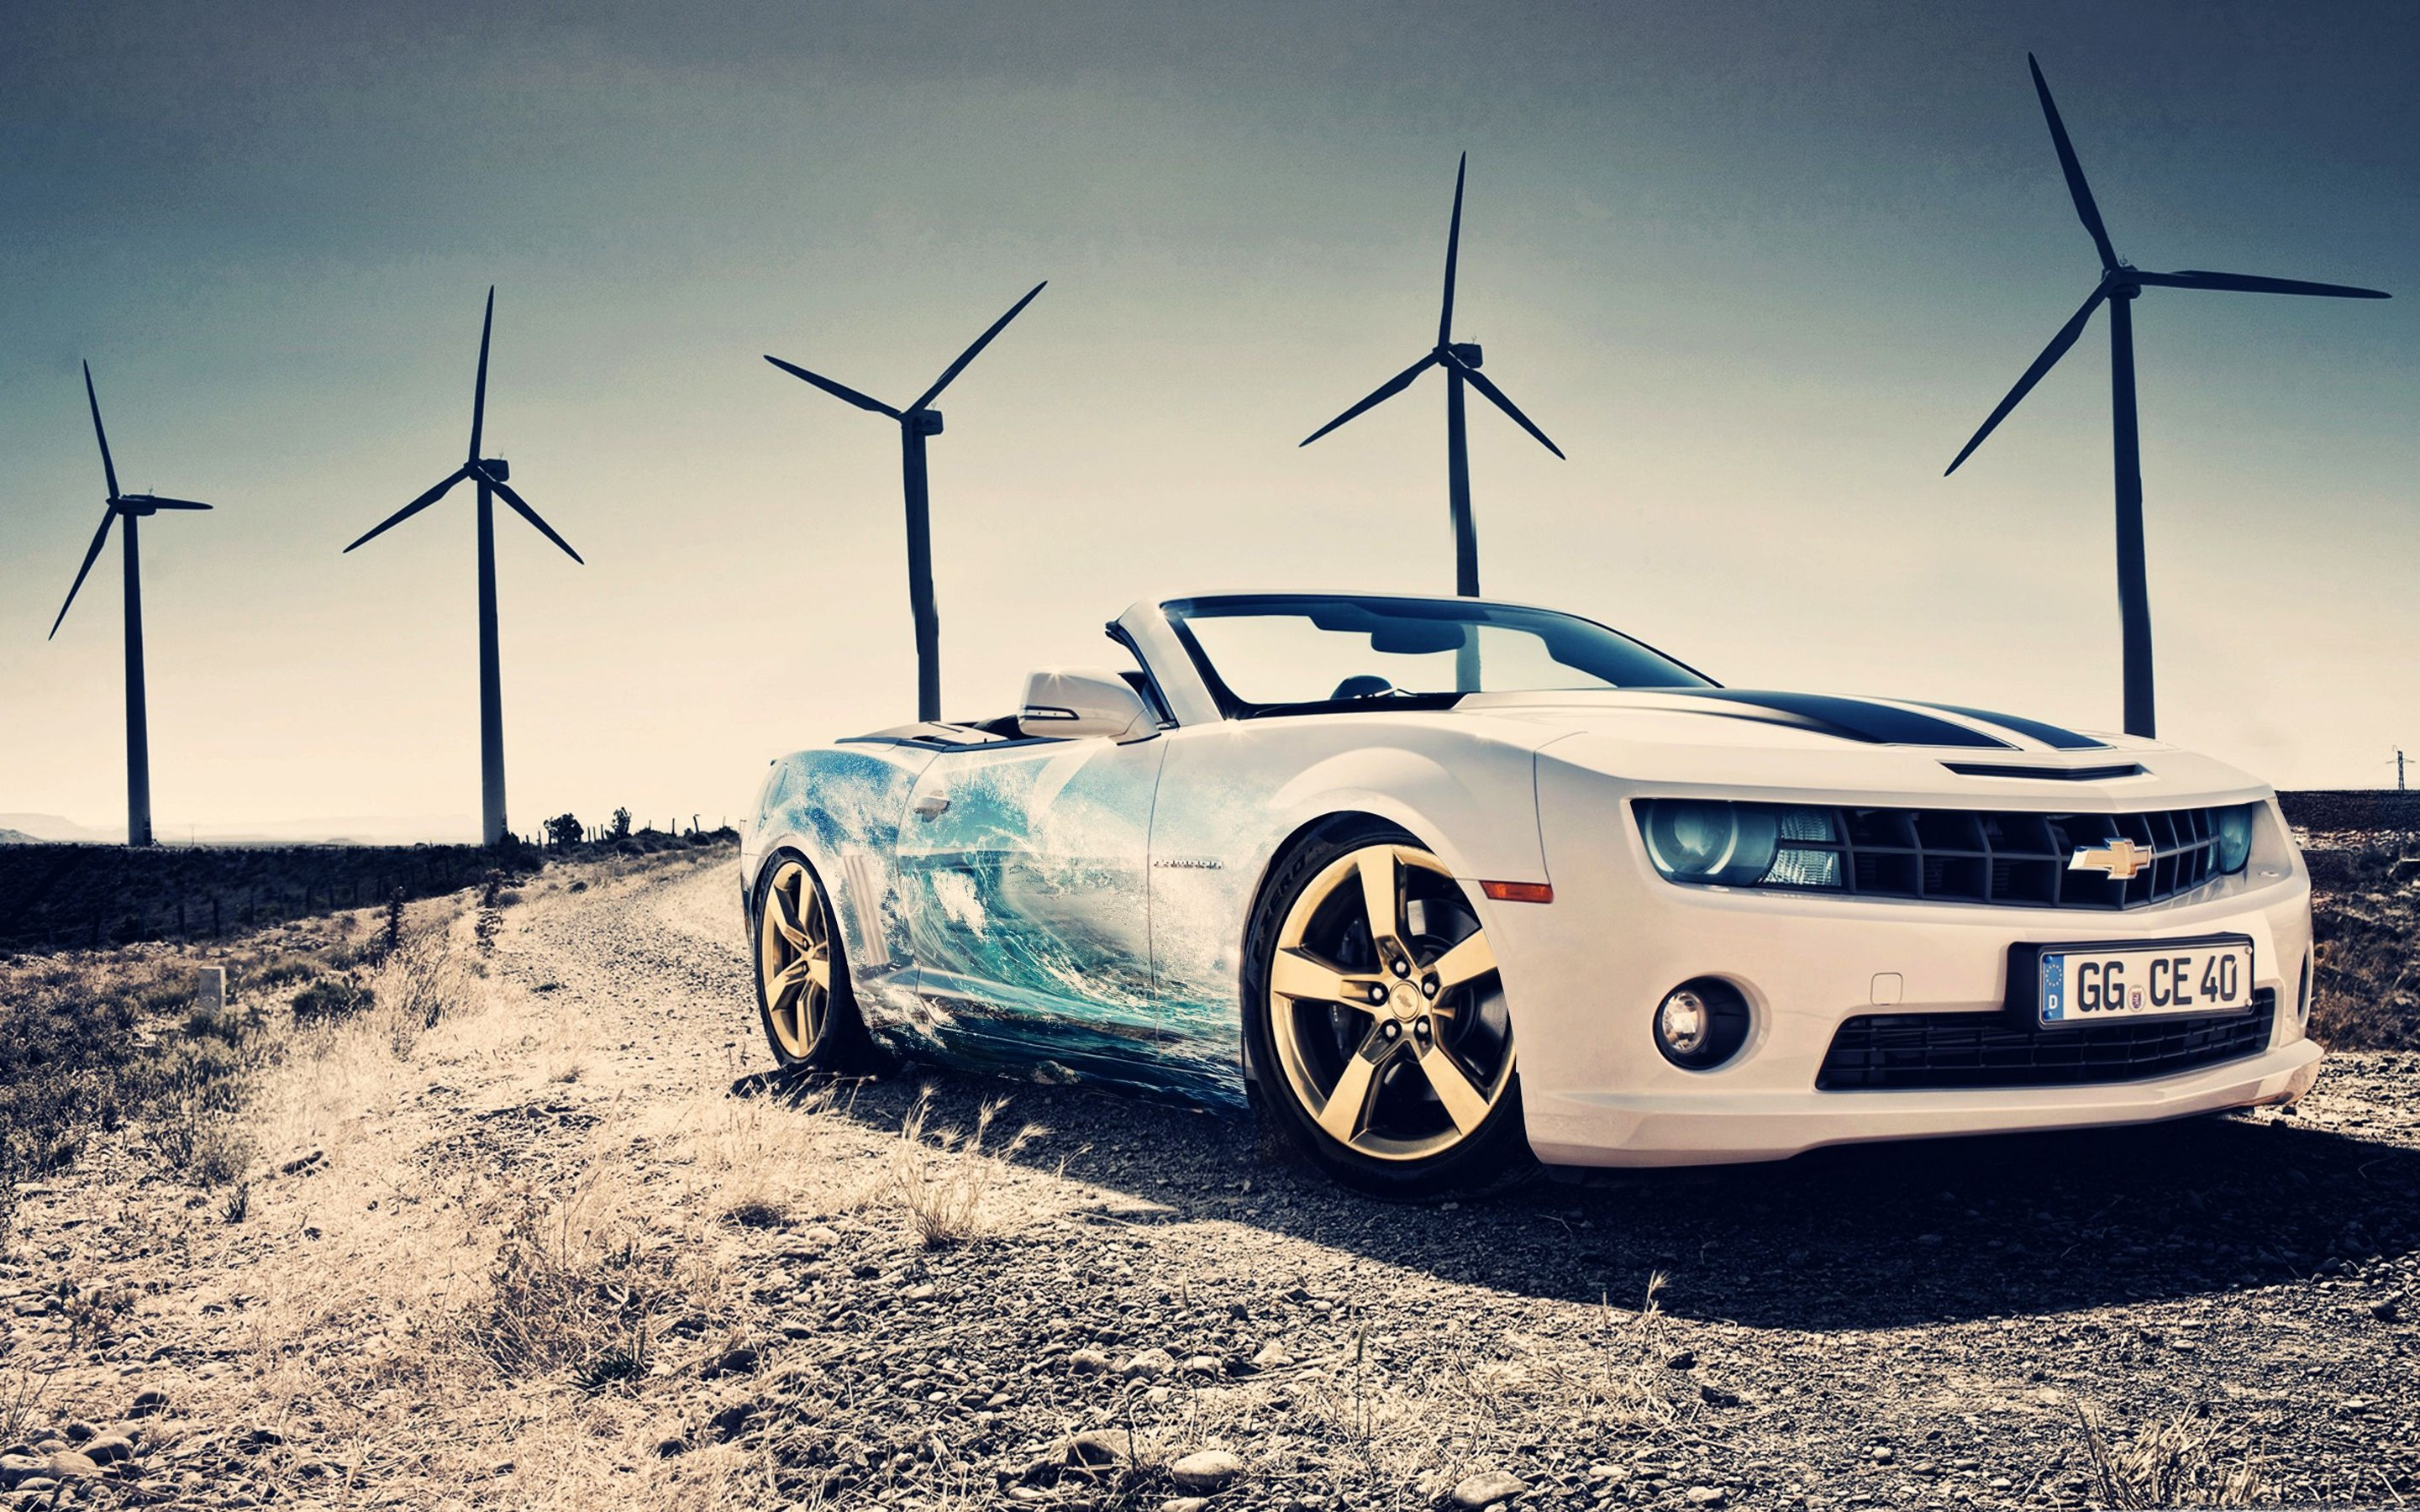 3d hd wallpapers free download. Car Picsart Background 4k Hd Images Download Picture Idokeren